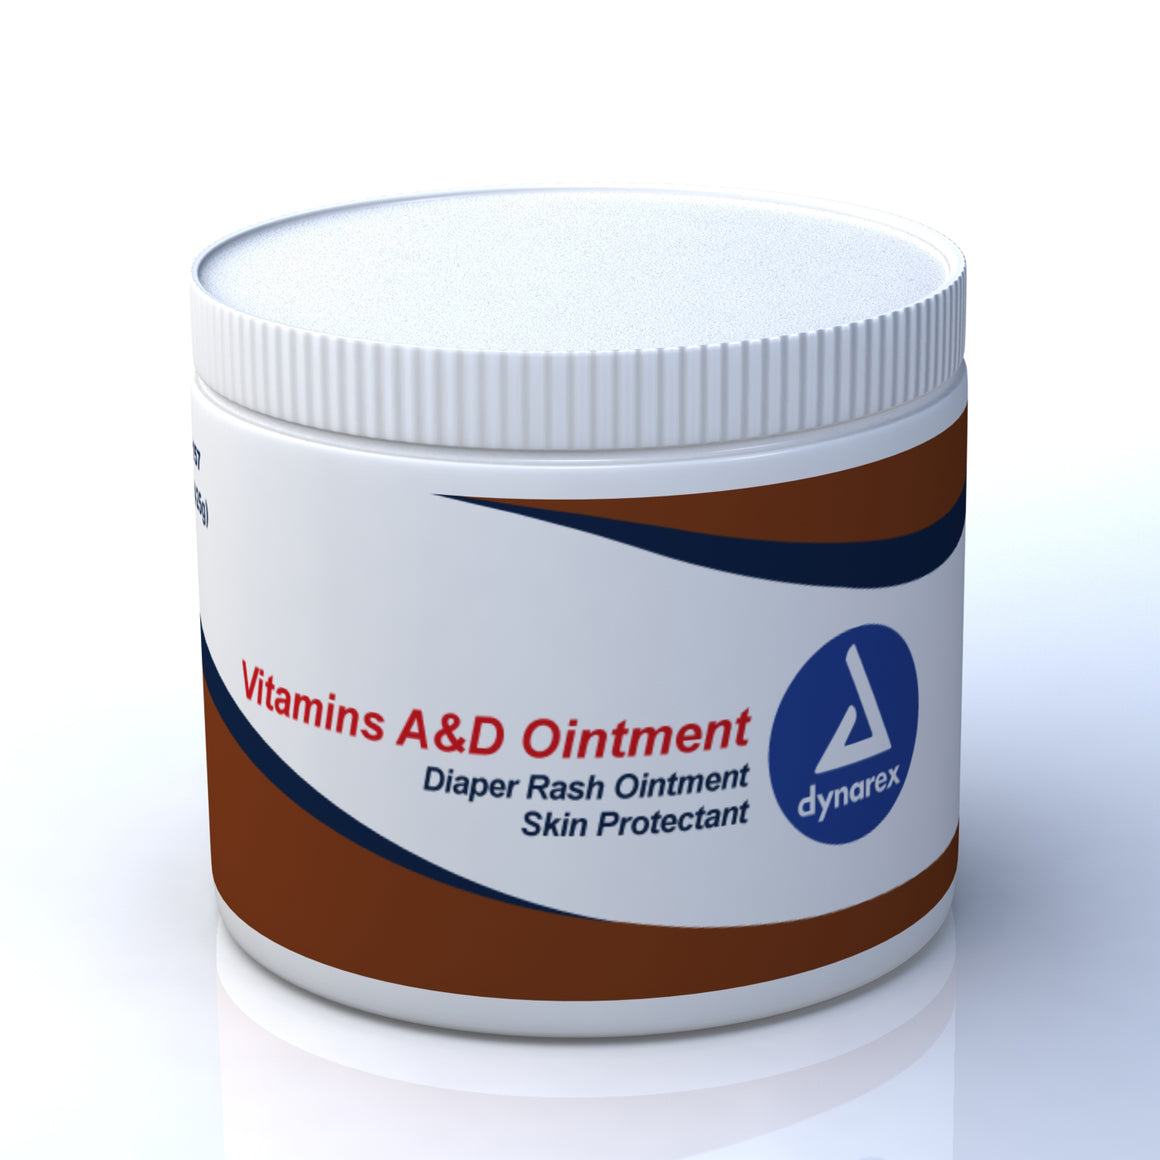 Dynarex #1157 Vitamin A and D Ointment